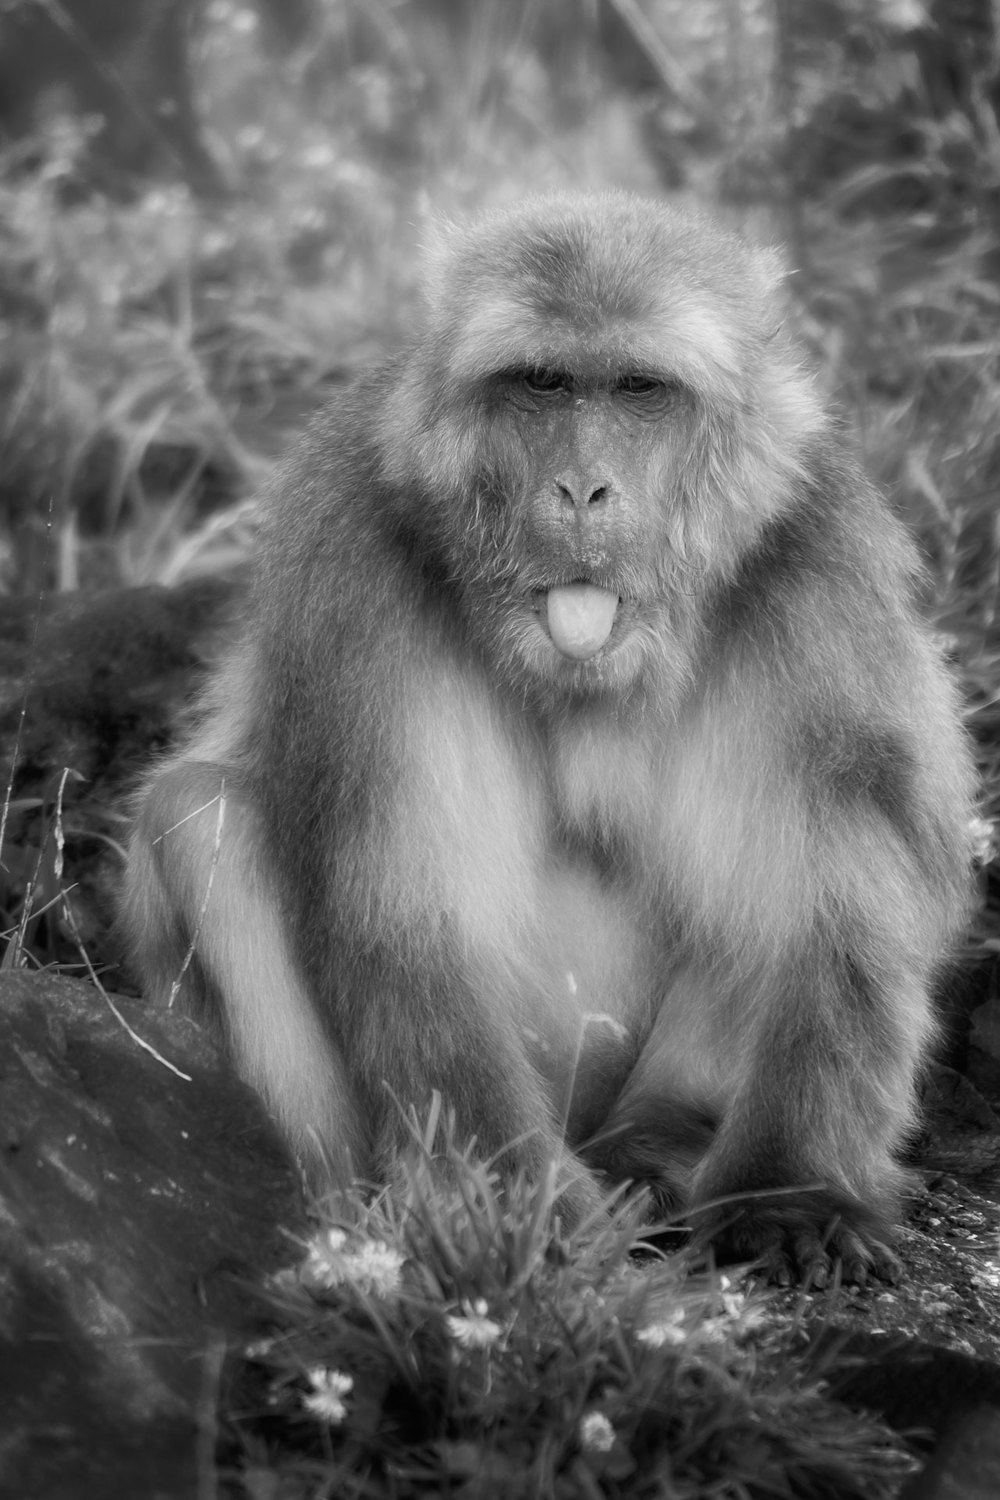 Summe Snow Monkey (Macaca fuscata) in Black and White (c) - Minnesota Zoo Nikon D7200 + Nikon 200-400mm f4 VR1 @ ISO 400